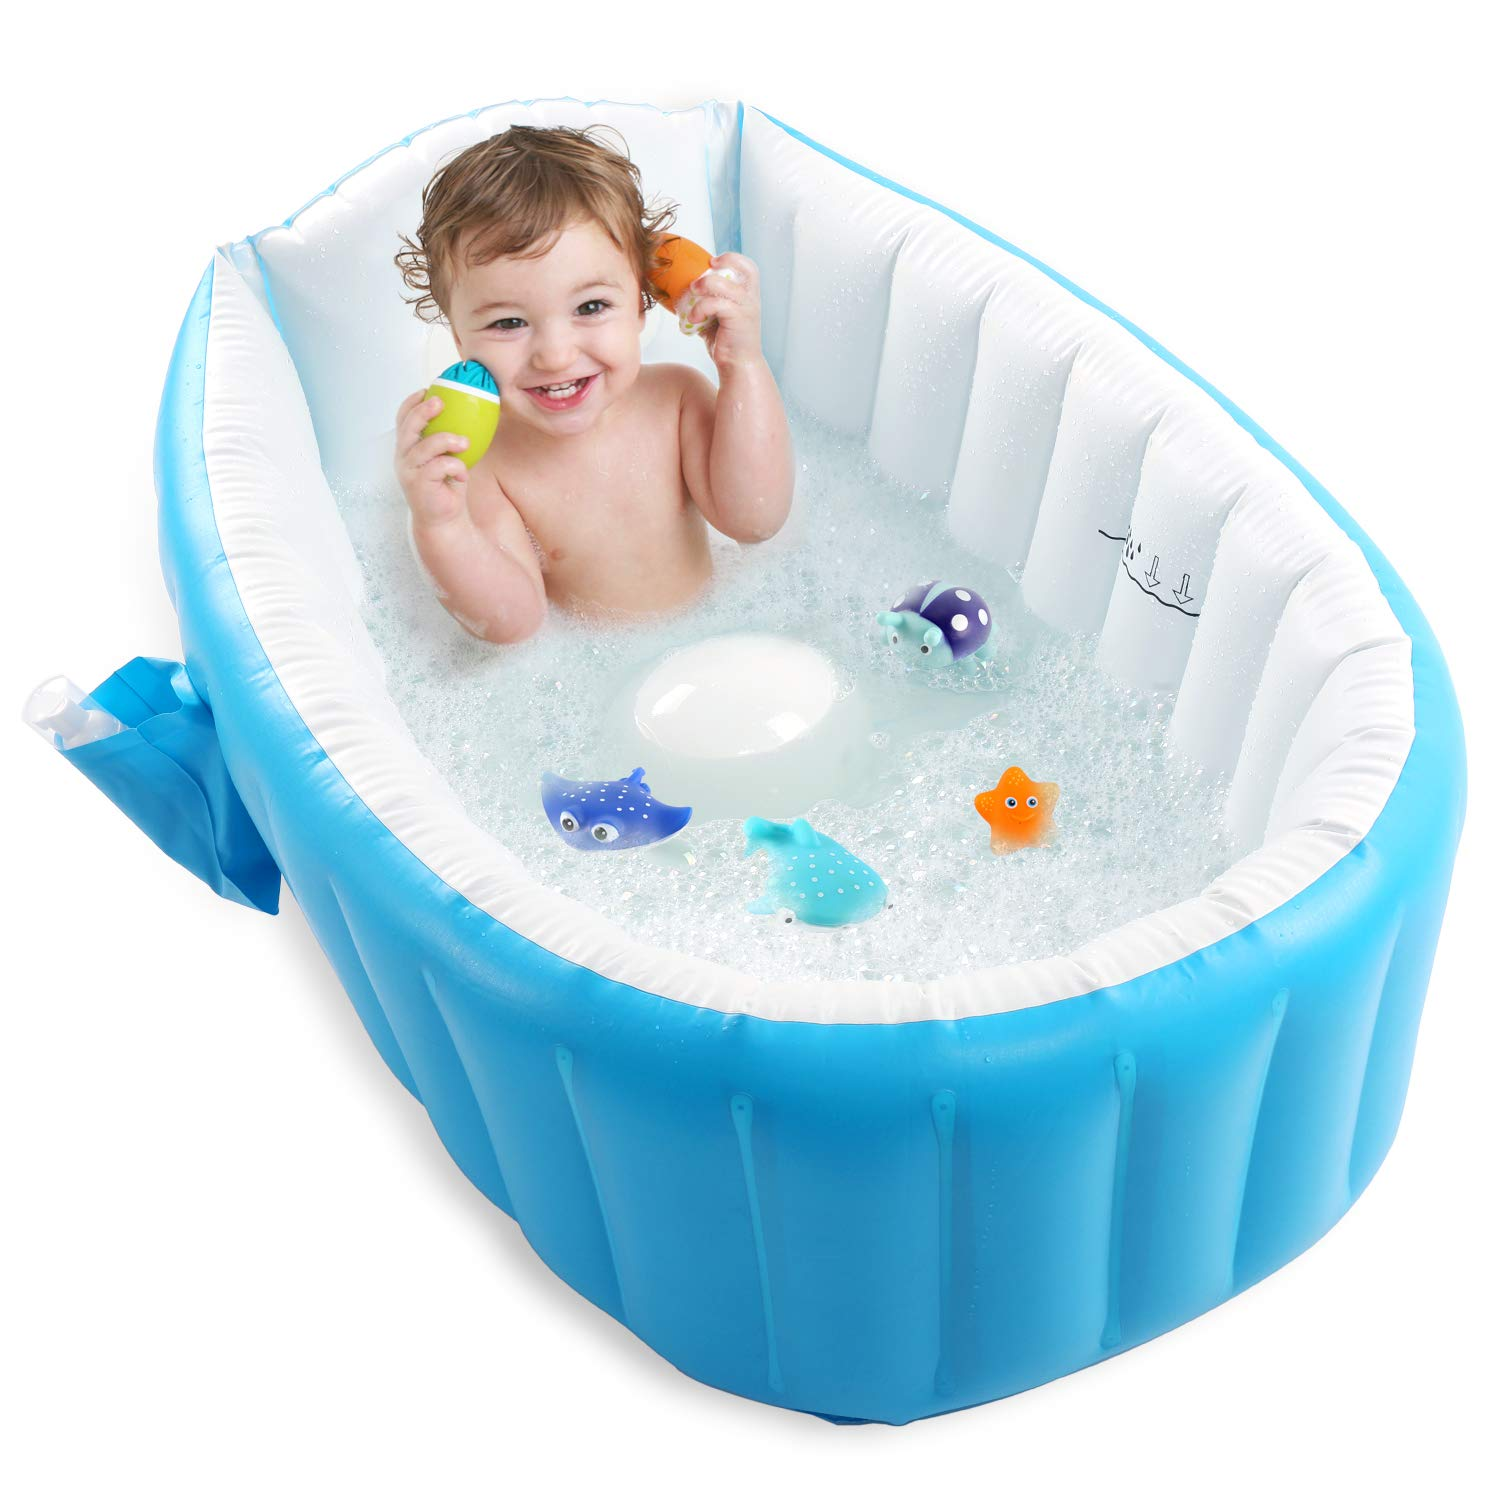 Baby Inflatable Bathtub, Pawsky Portable Infant Toddler Bathing Tub Non Slip Travel Bathtub Mini Air Swimming Pool Kids Thick Foldable Shower Basin, Blue by Pawsky